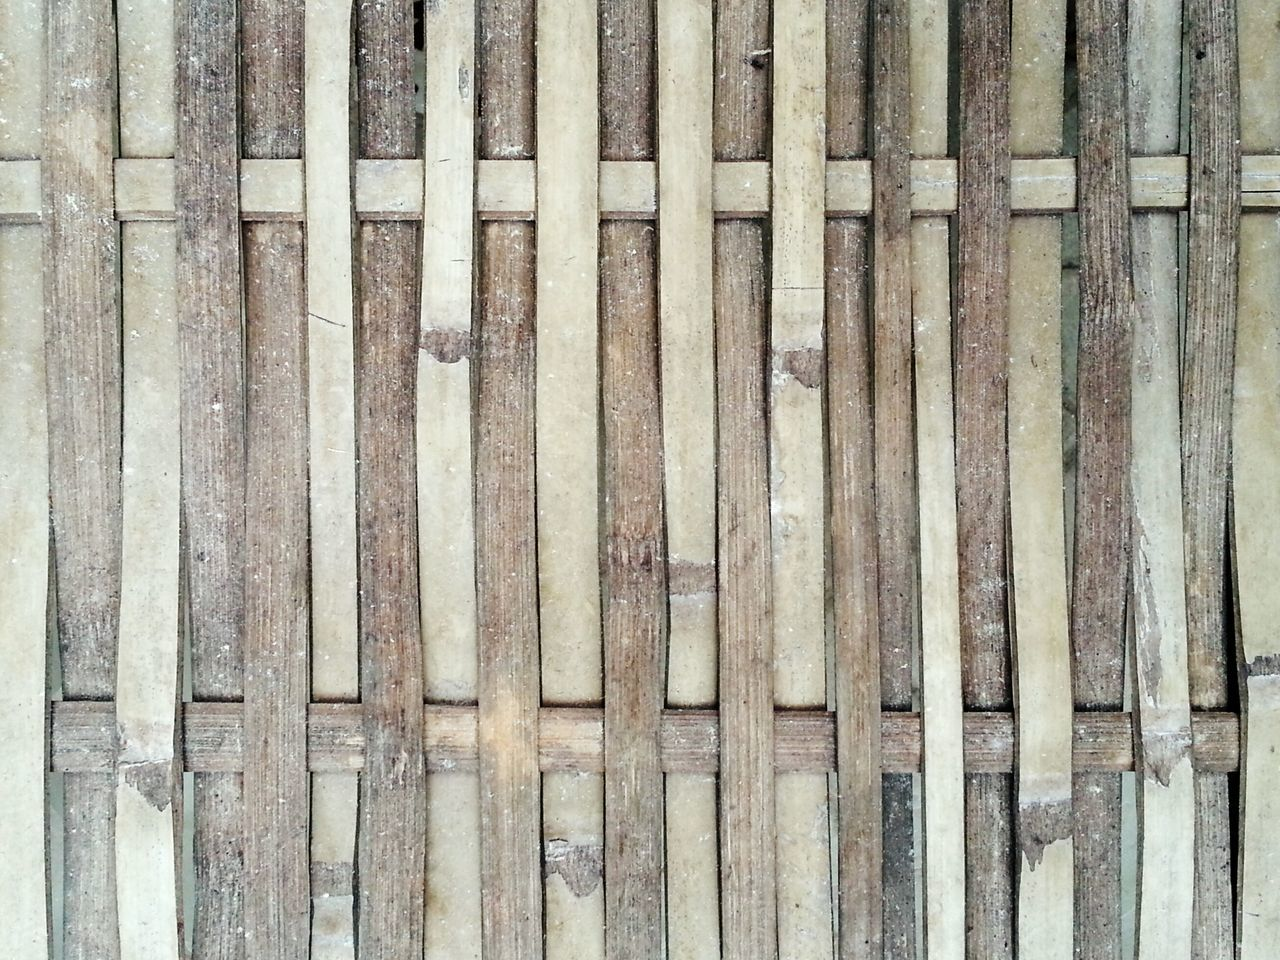 Full Frame Backgrounds Wood - Material Textured  Pattern Textured  Bamboodesign Wood Grain Striped